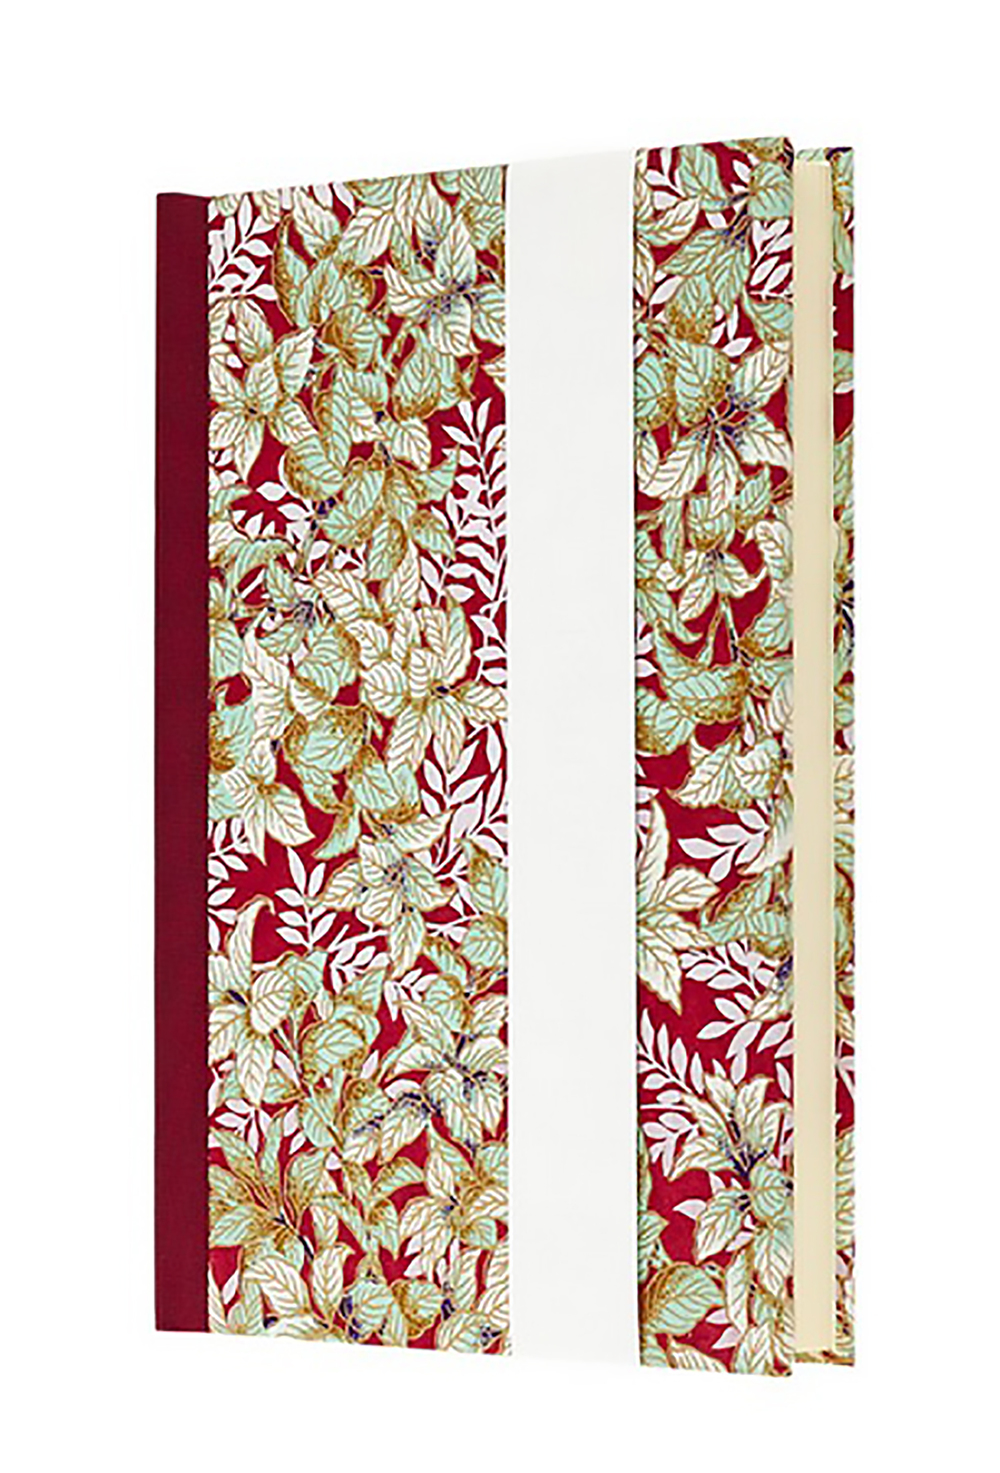 liberty of london red leaves lined journal organized 1500.jpg